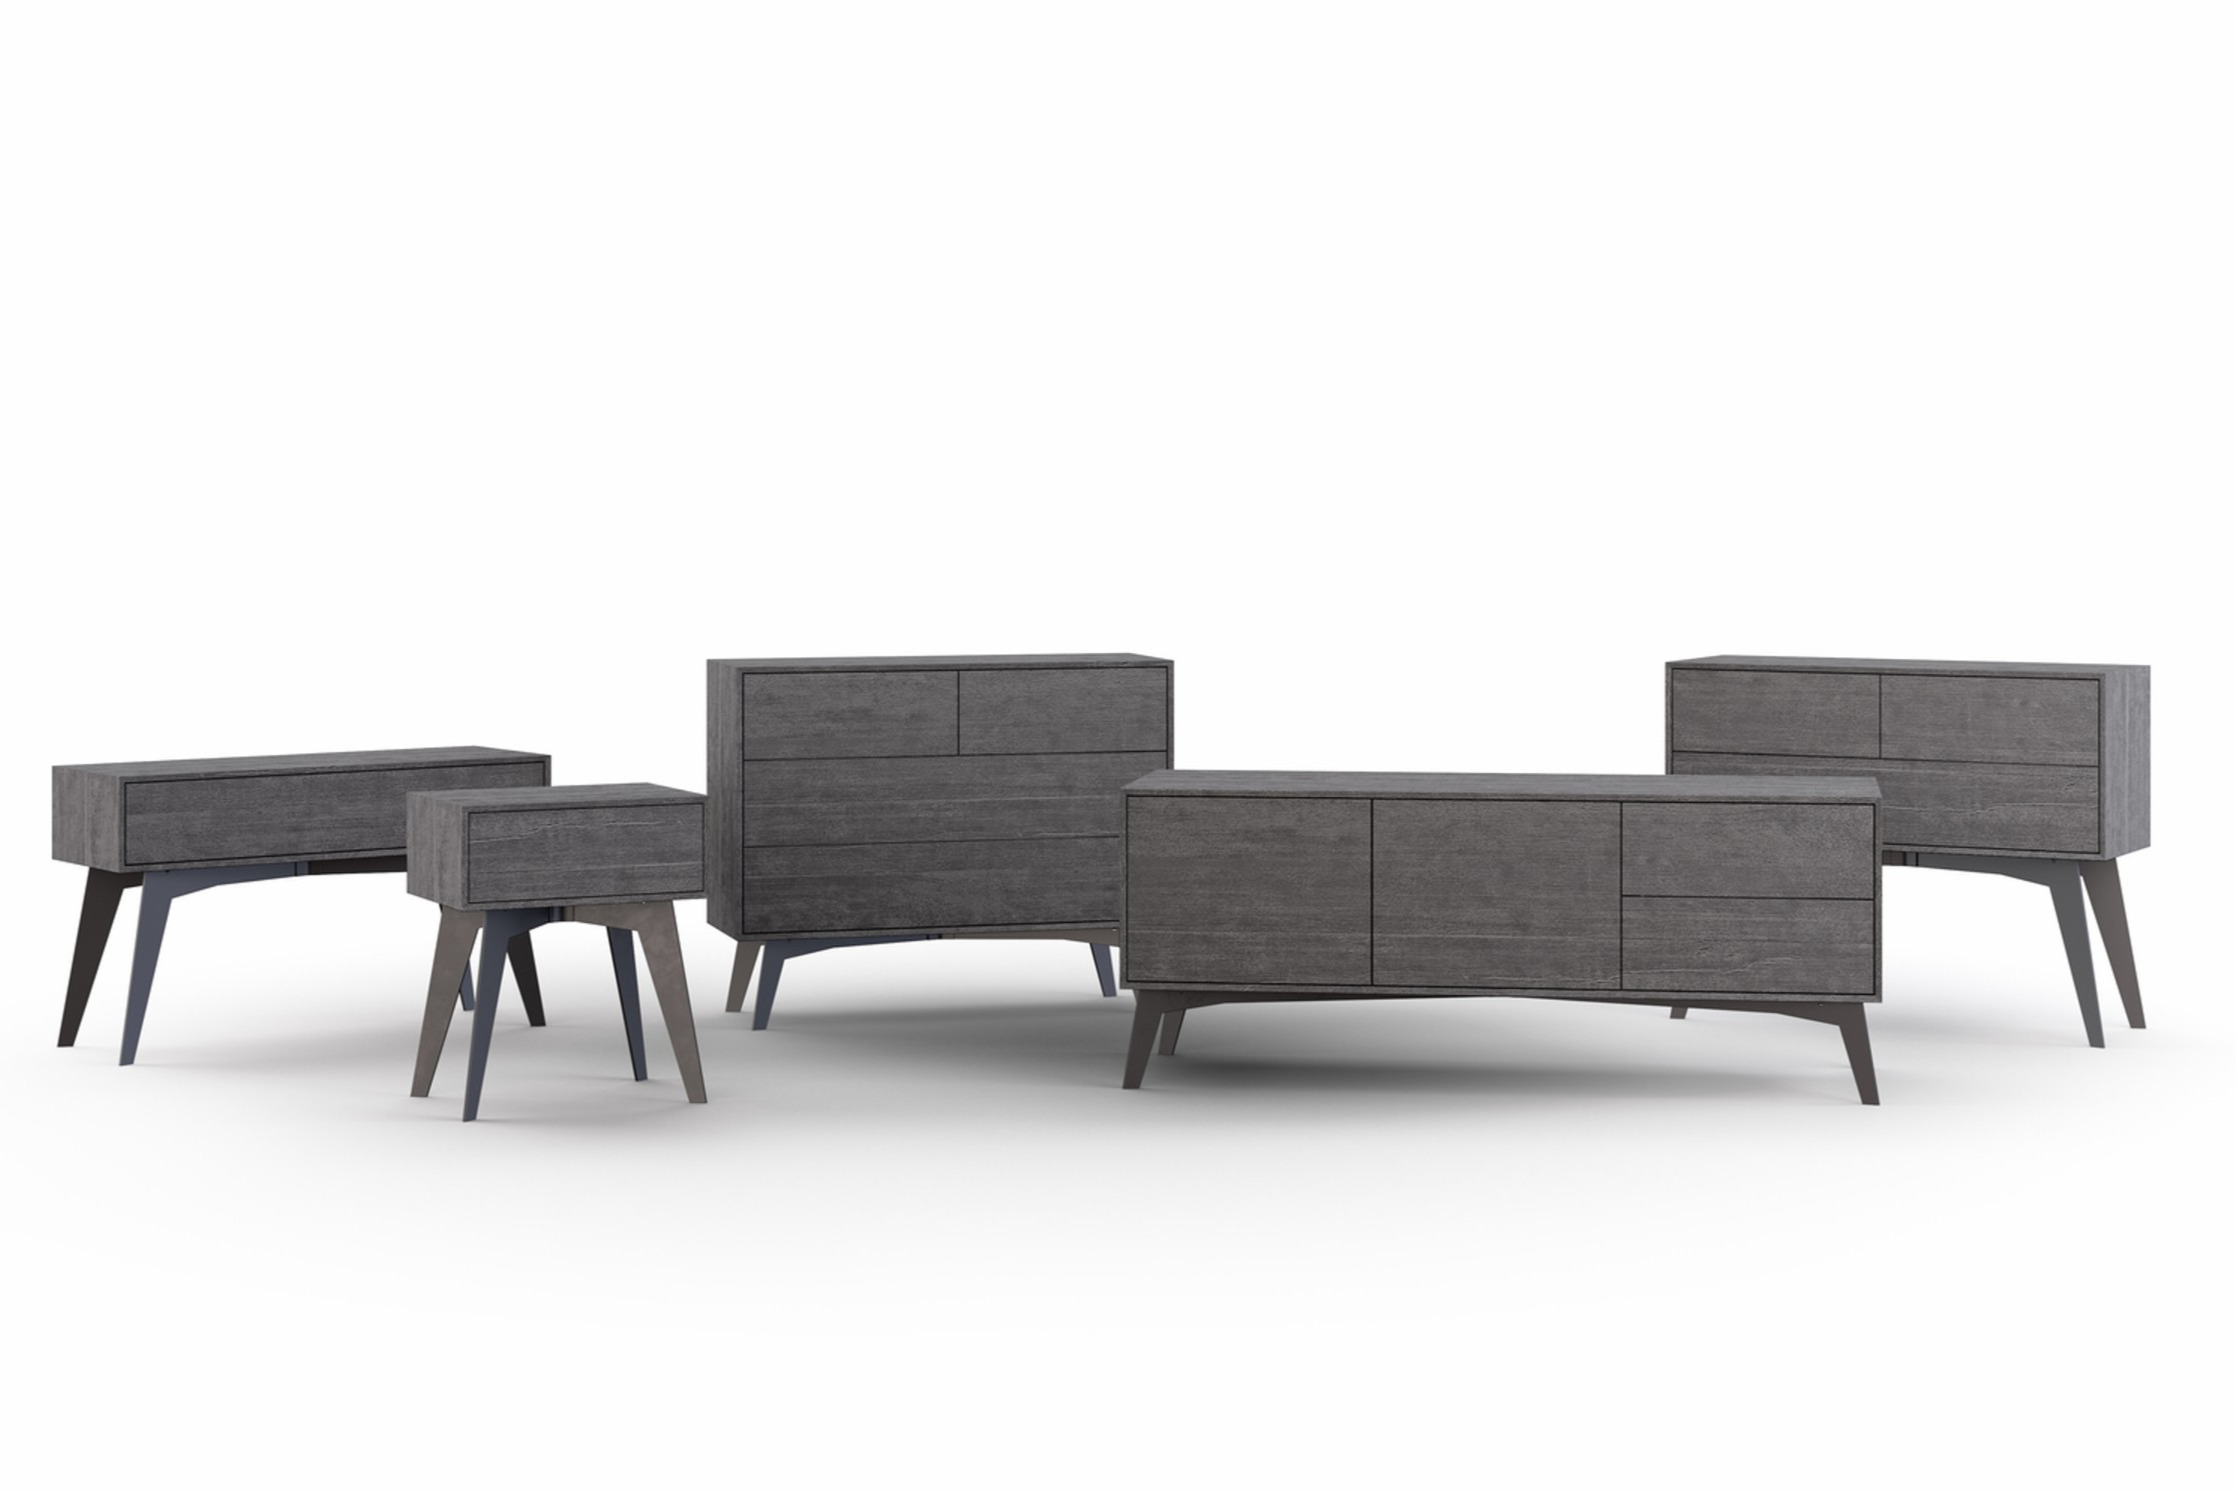 KOLOfurniture